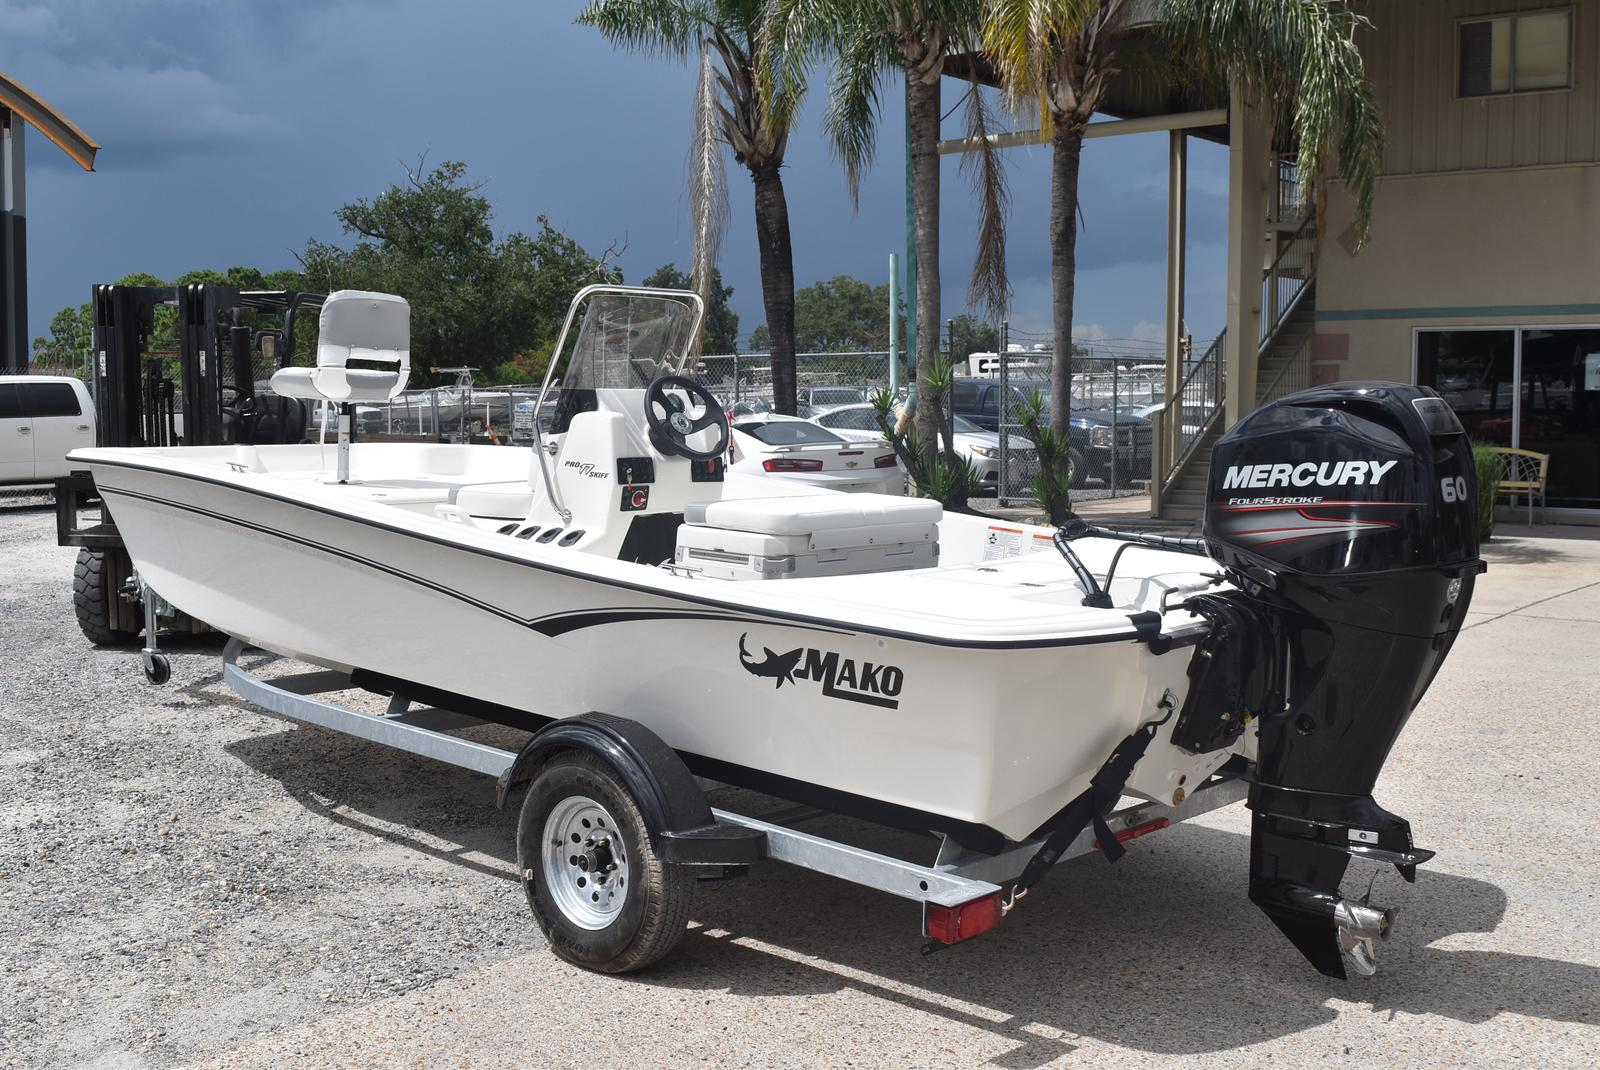 2020 Mako boat for sale, model of the boat is Pro Skiff 17, 75 ELPT & Image # 202 of 702